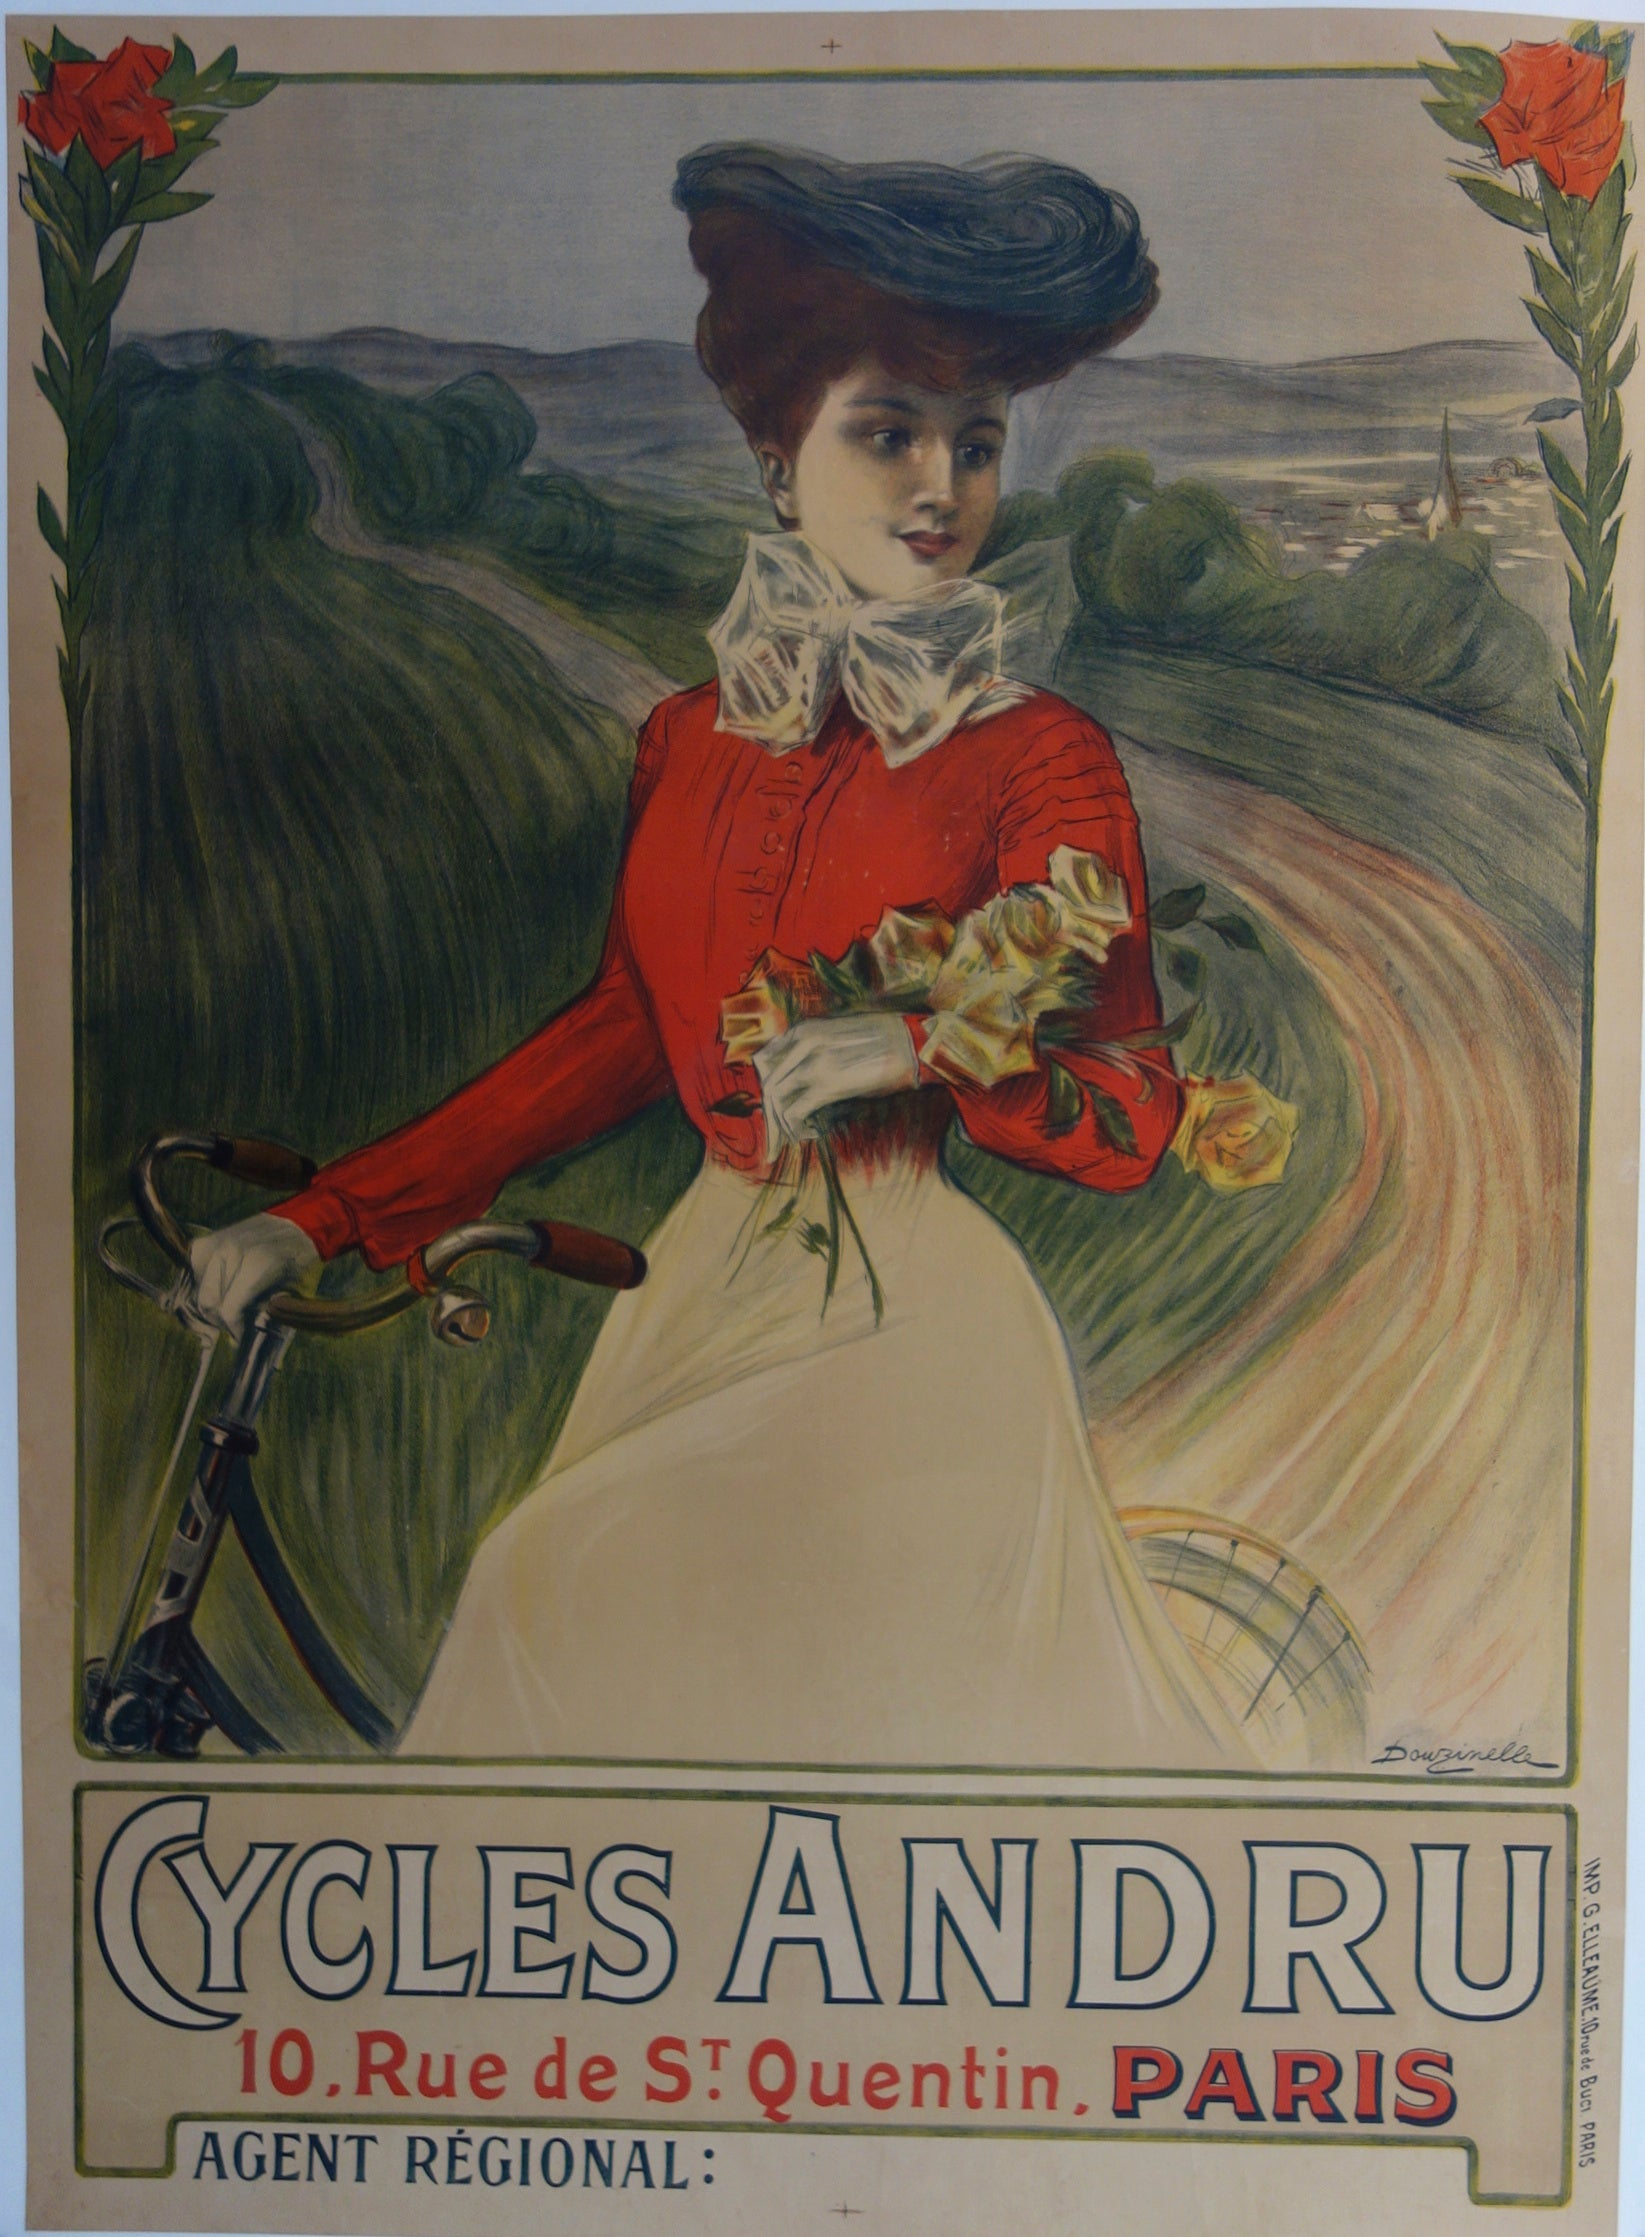 Cycles Andru